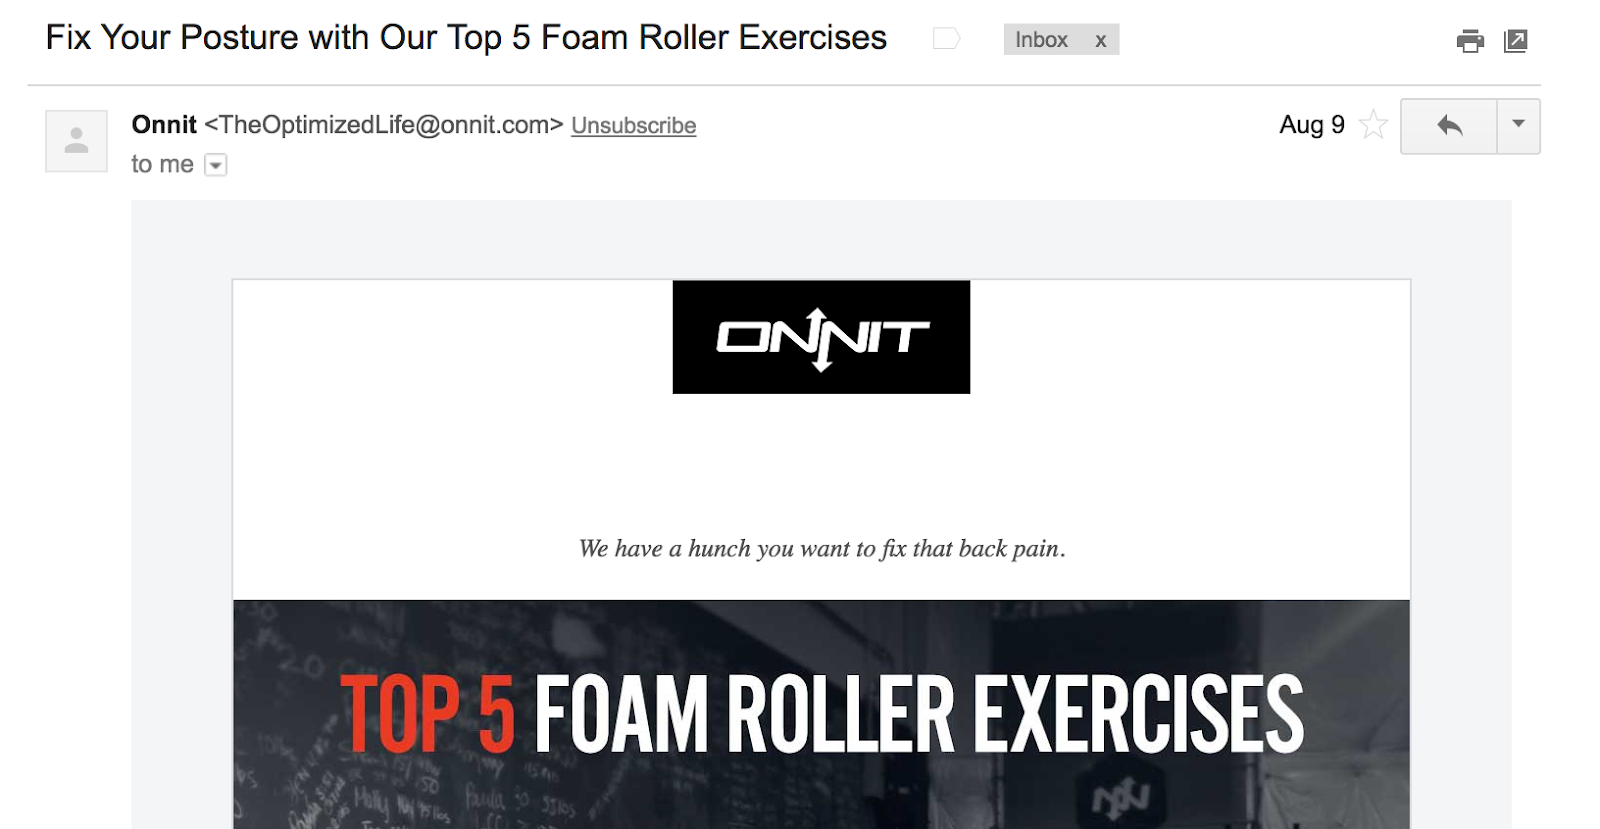 Best Email Subject Lines: Screenshot of email from Onnit